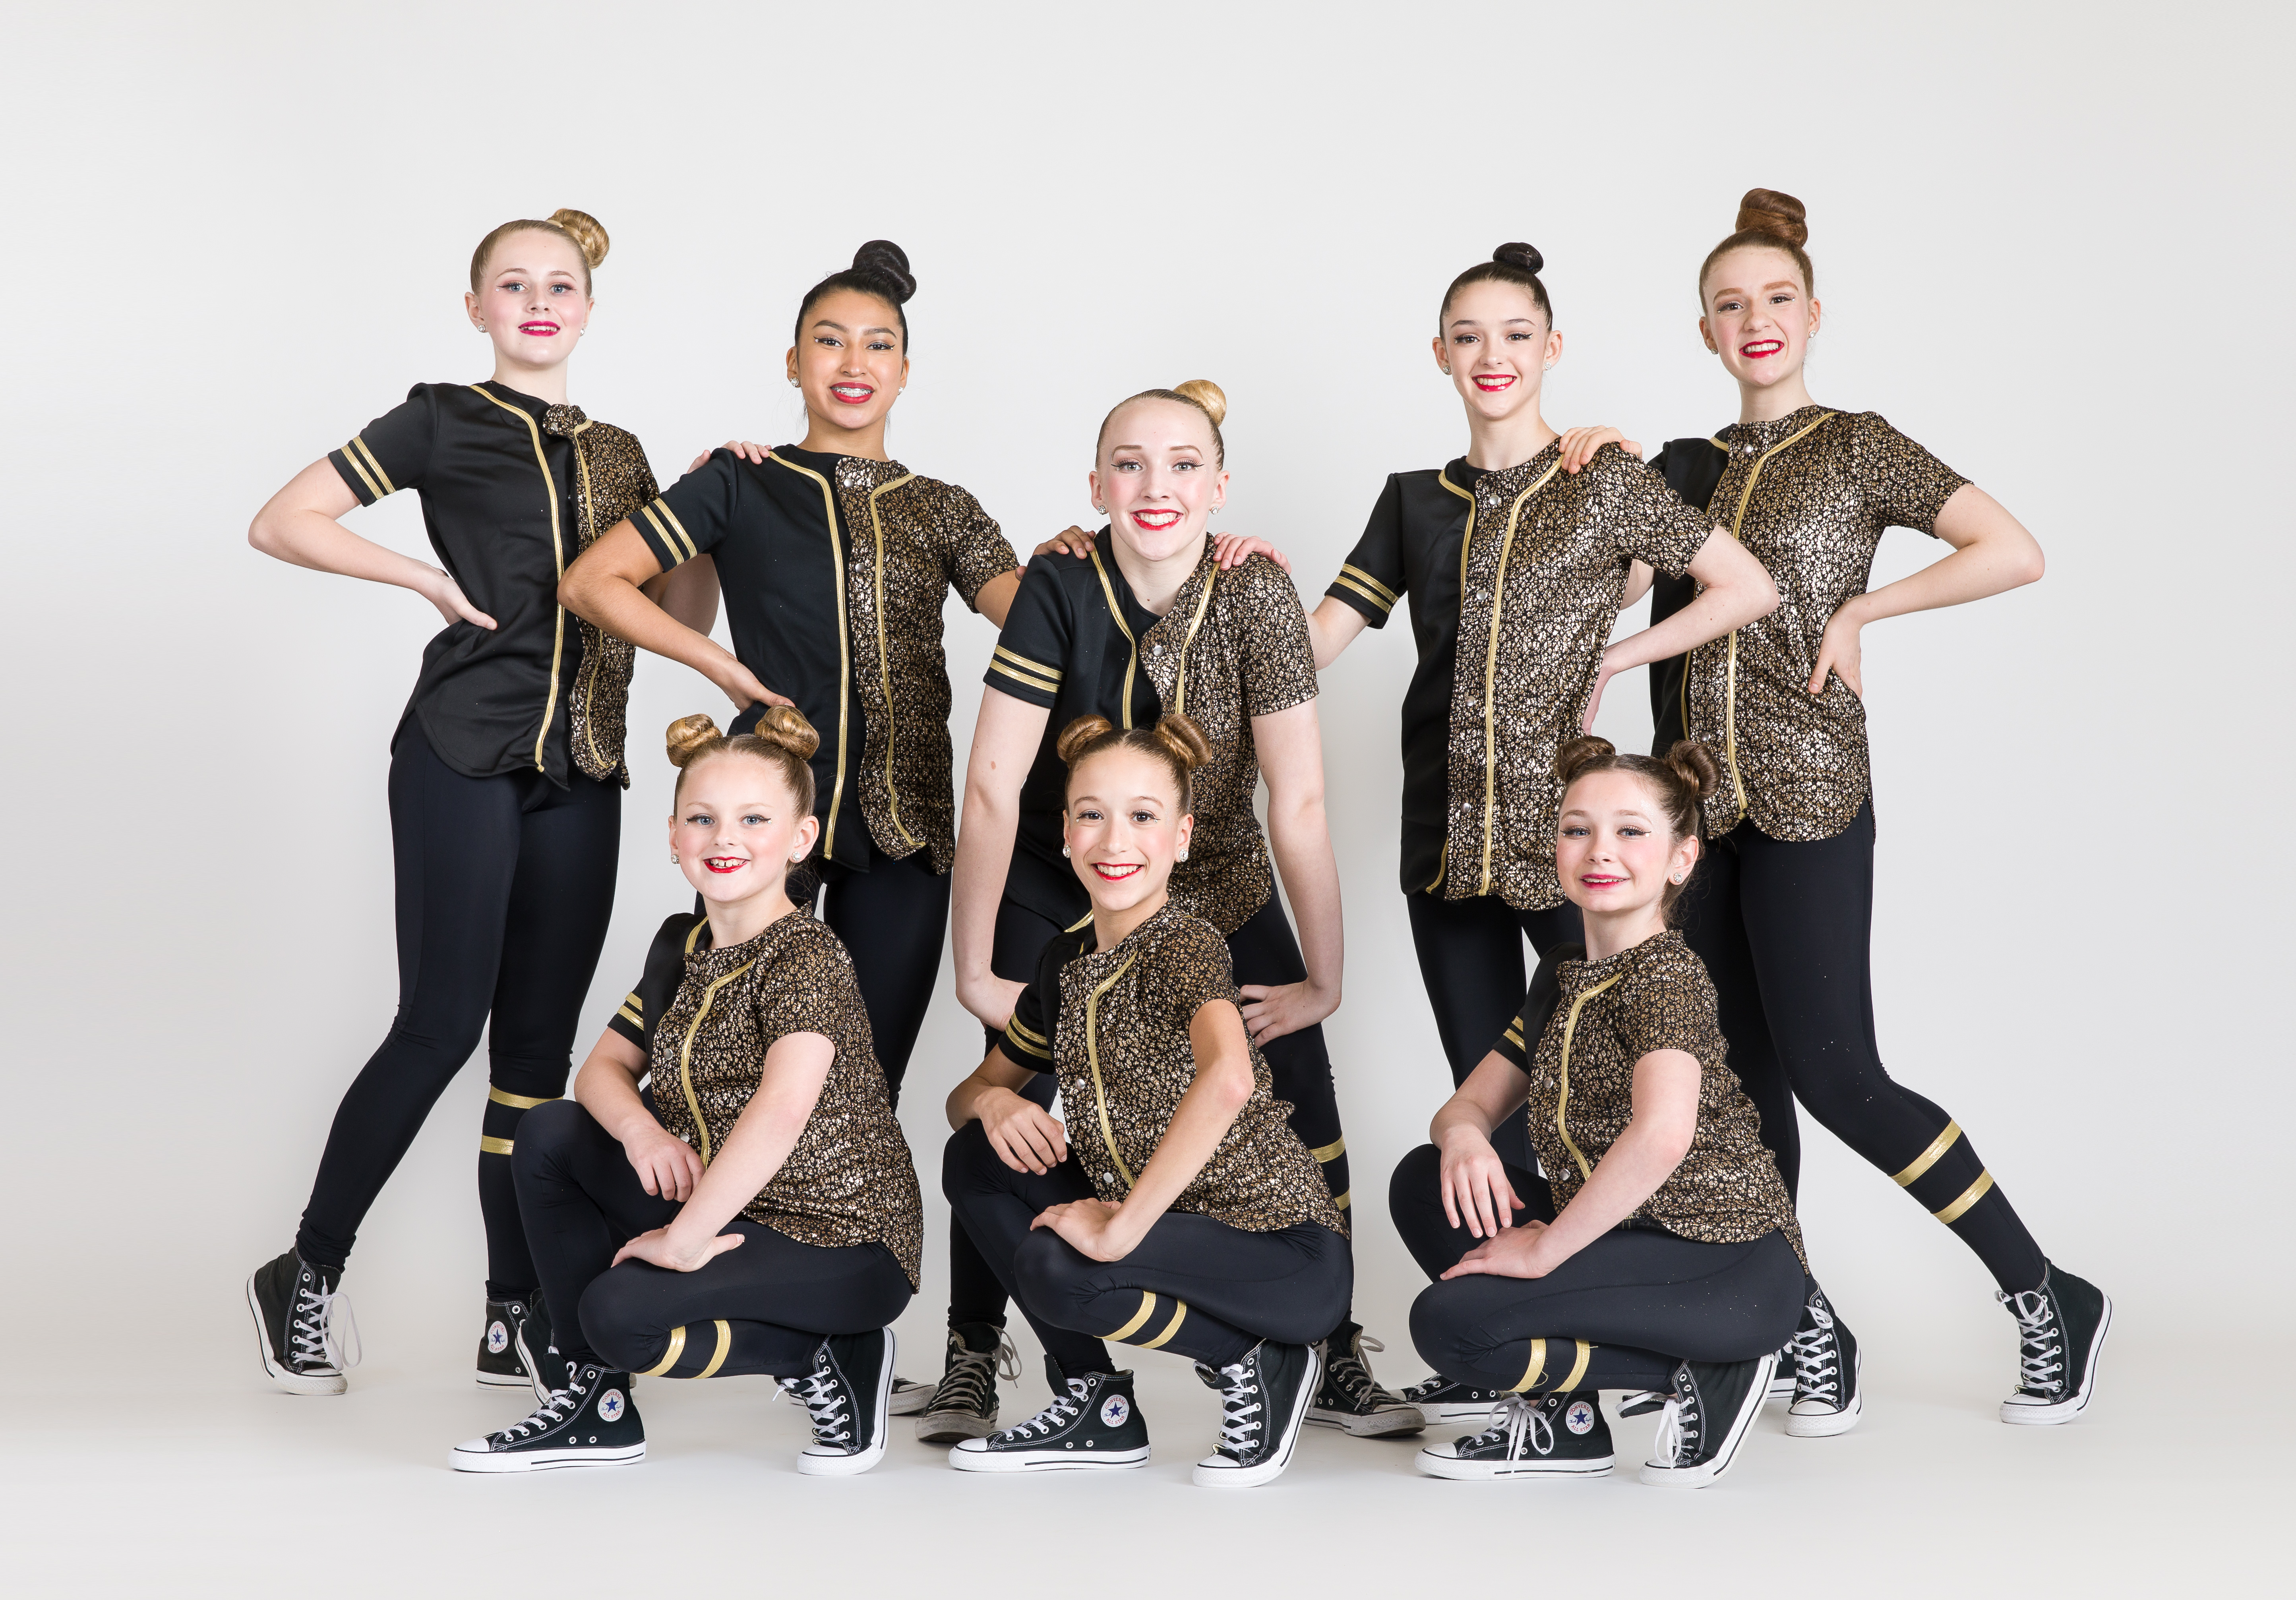 2019-4-13-the-dance-spot-recital3464-Edi